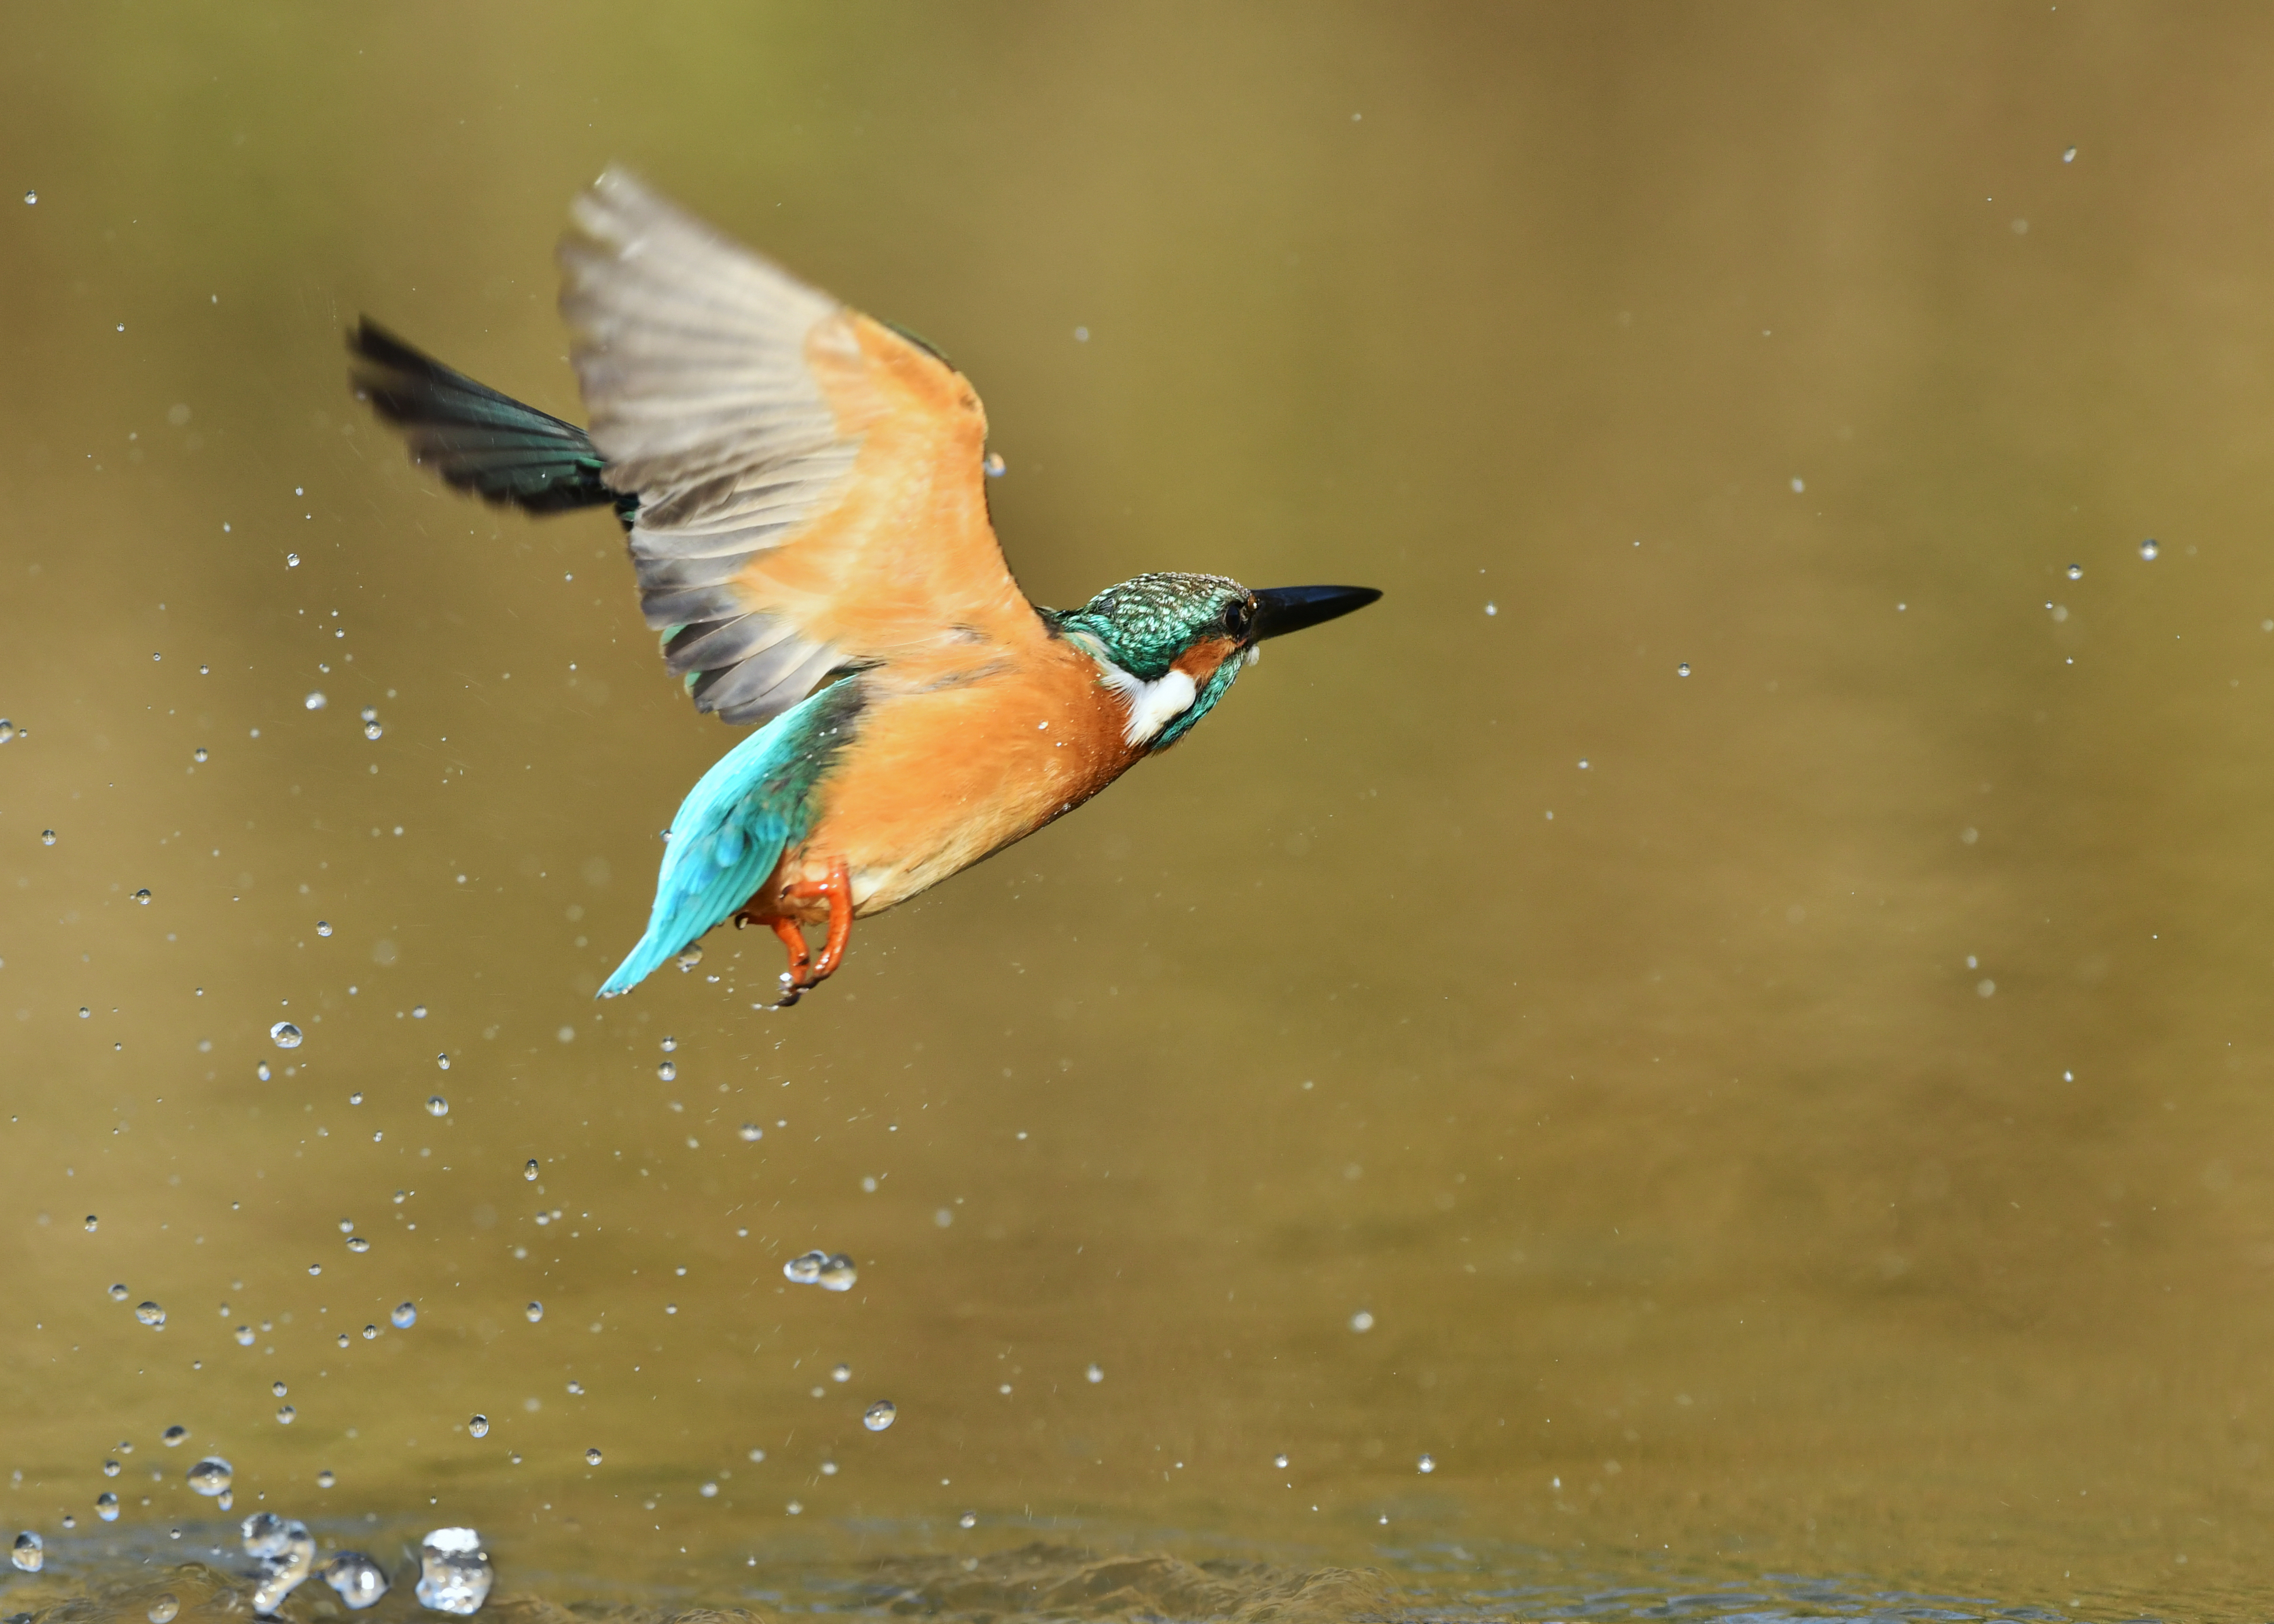 https://news.ra-pport.com/images/Bathing-in-a-Kingfisher-977637008_4805x3432.jpeg